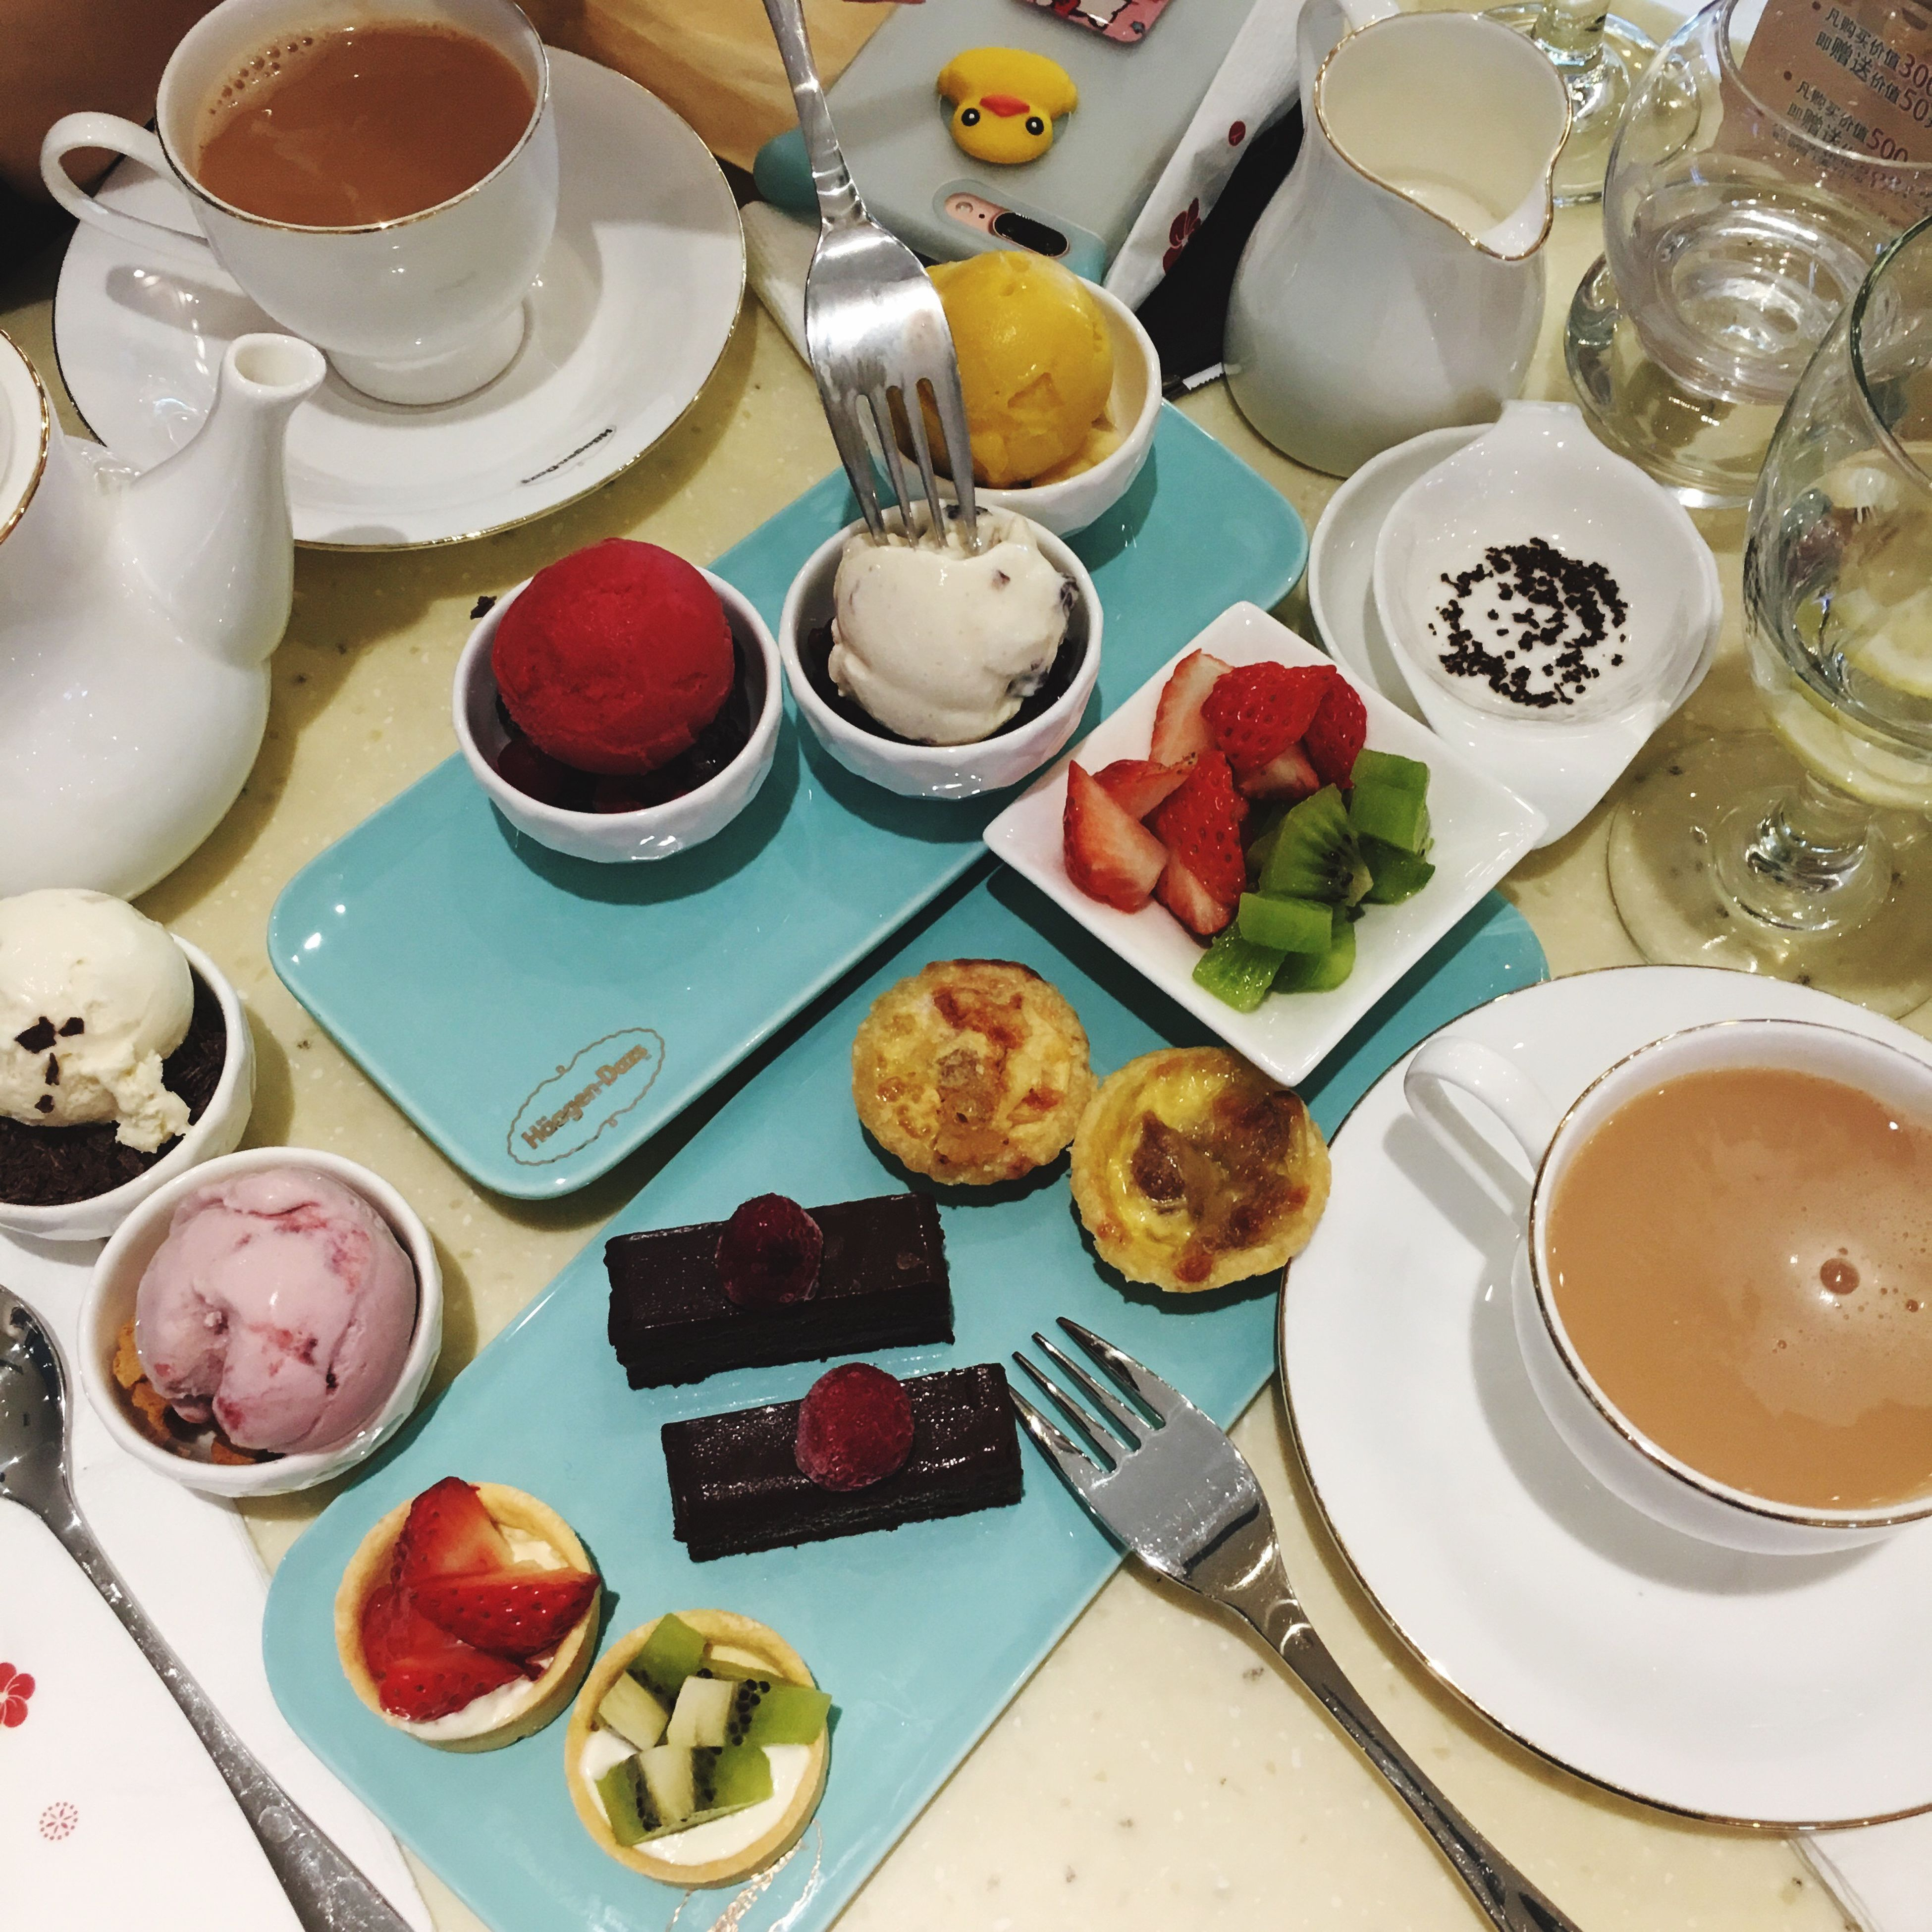 sweet food, food, dessert, temptation, freshness, food and drink, ready-to-eat, plate, indulgence, cupcake, serving size, no people, french food, table, indoors, day